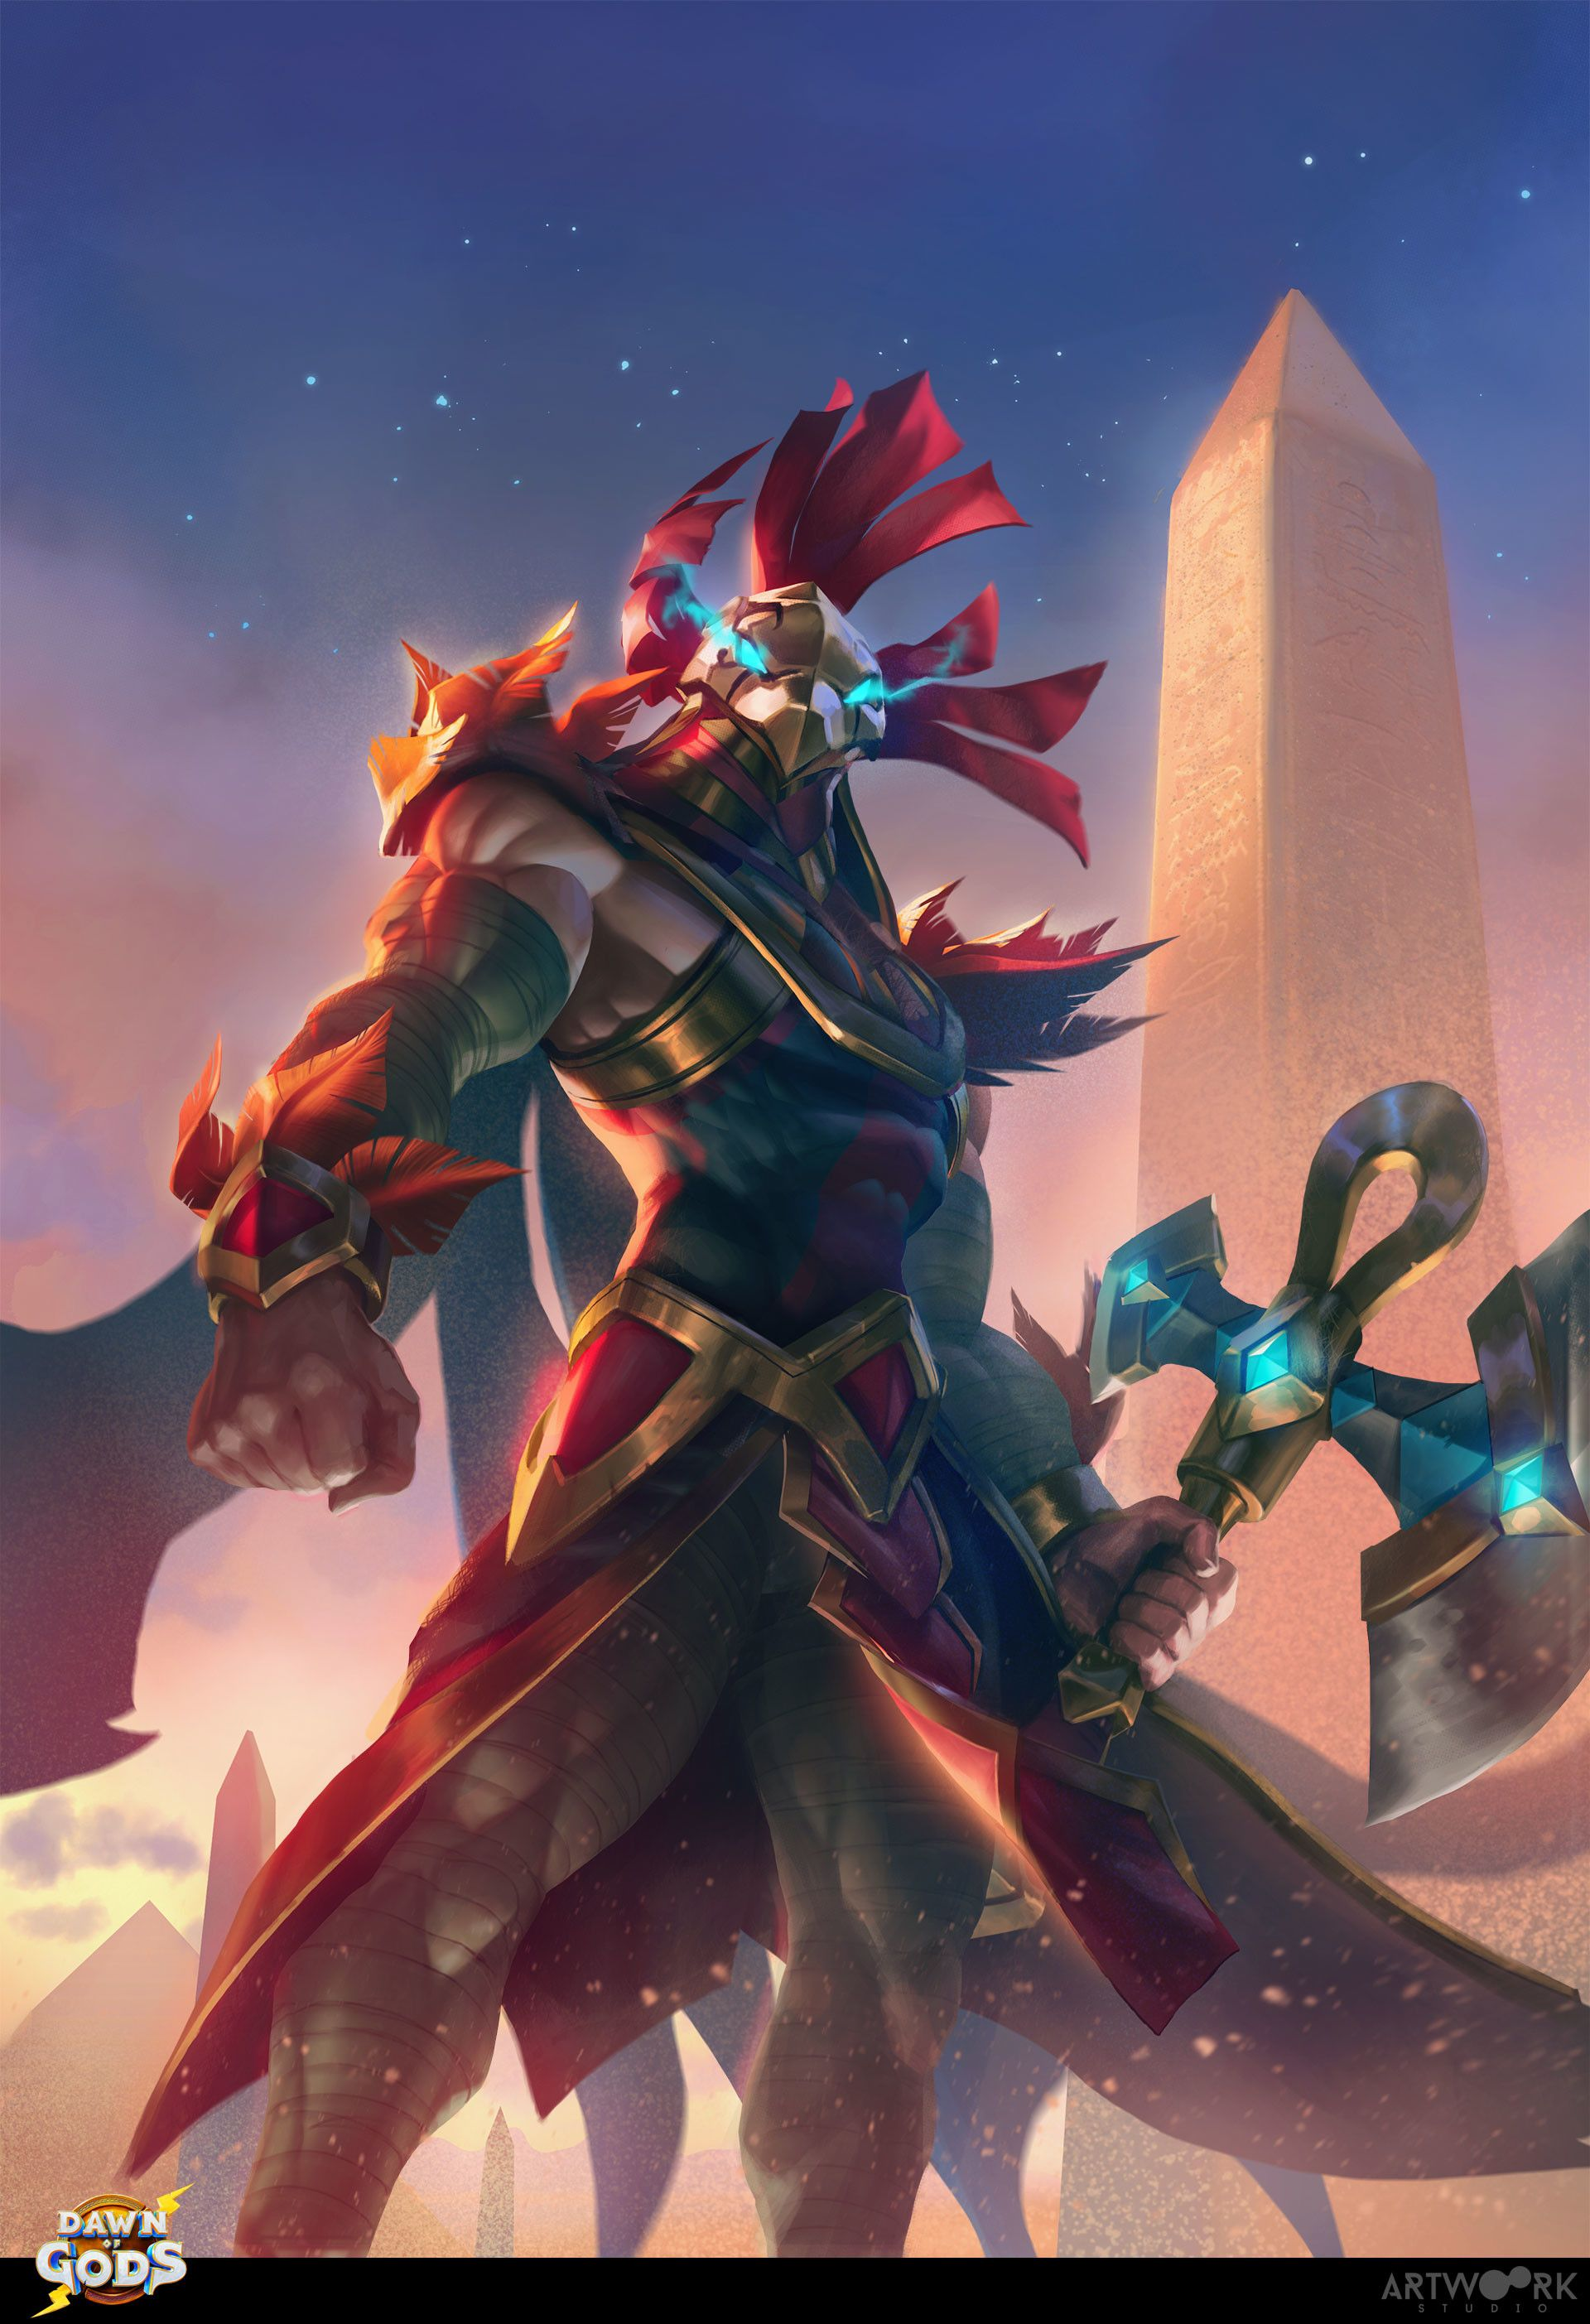 Artwoork created over 40 card art illustrations for the